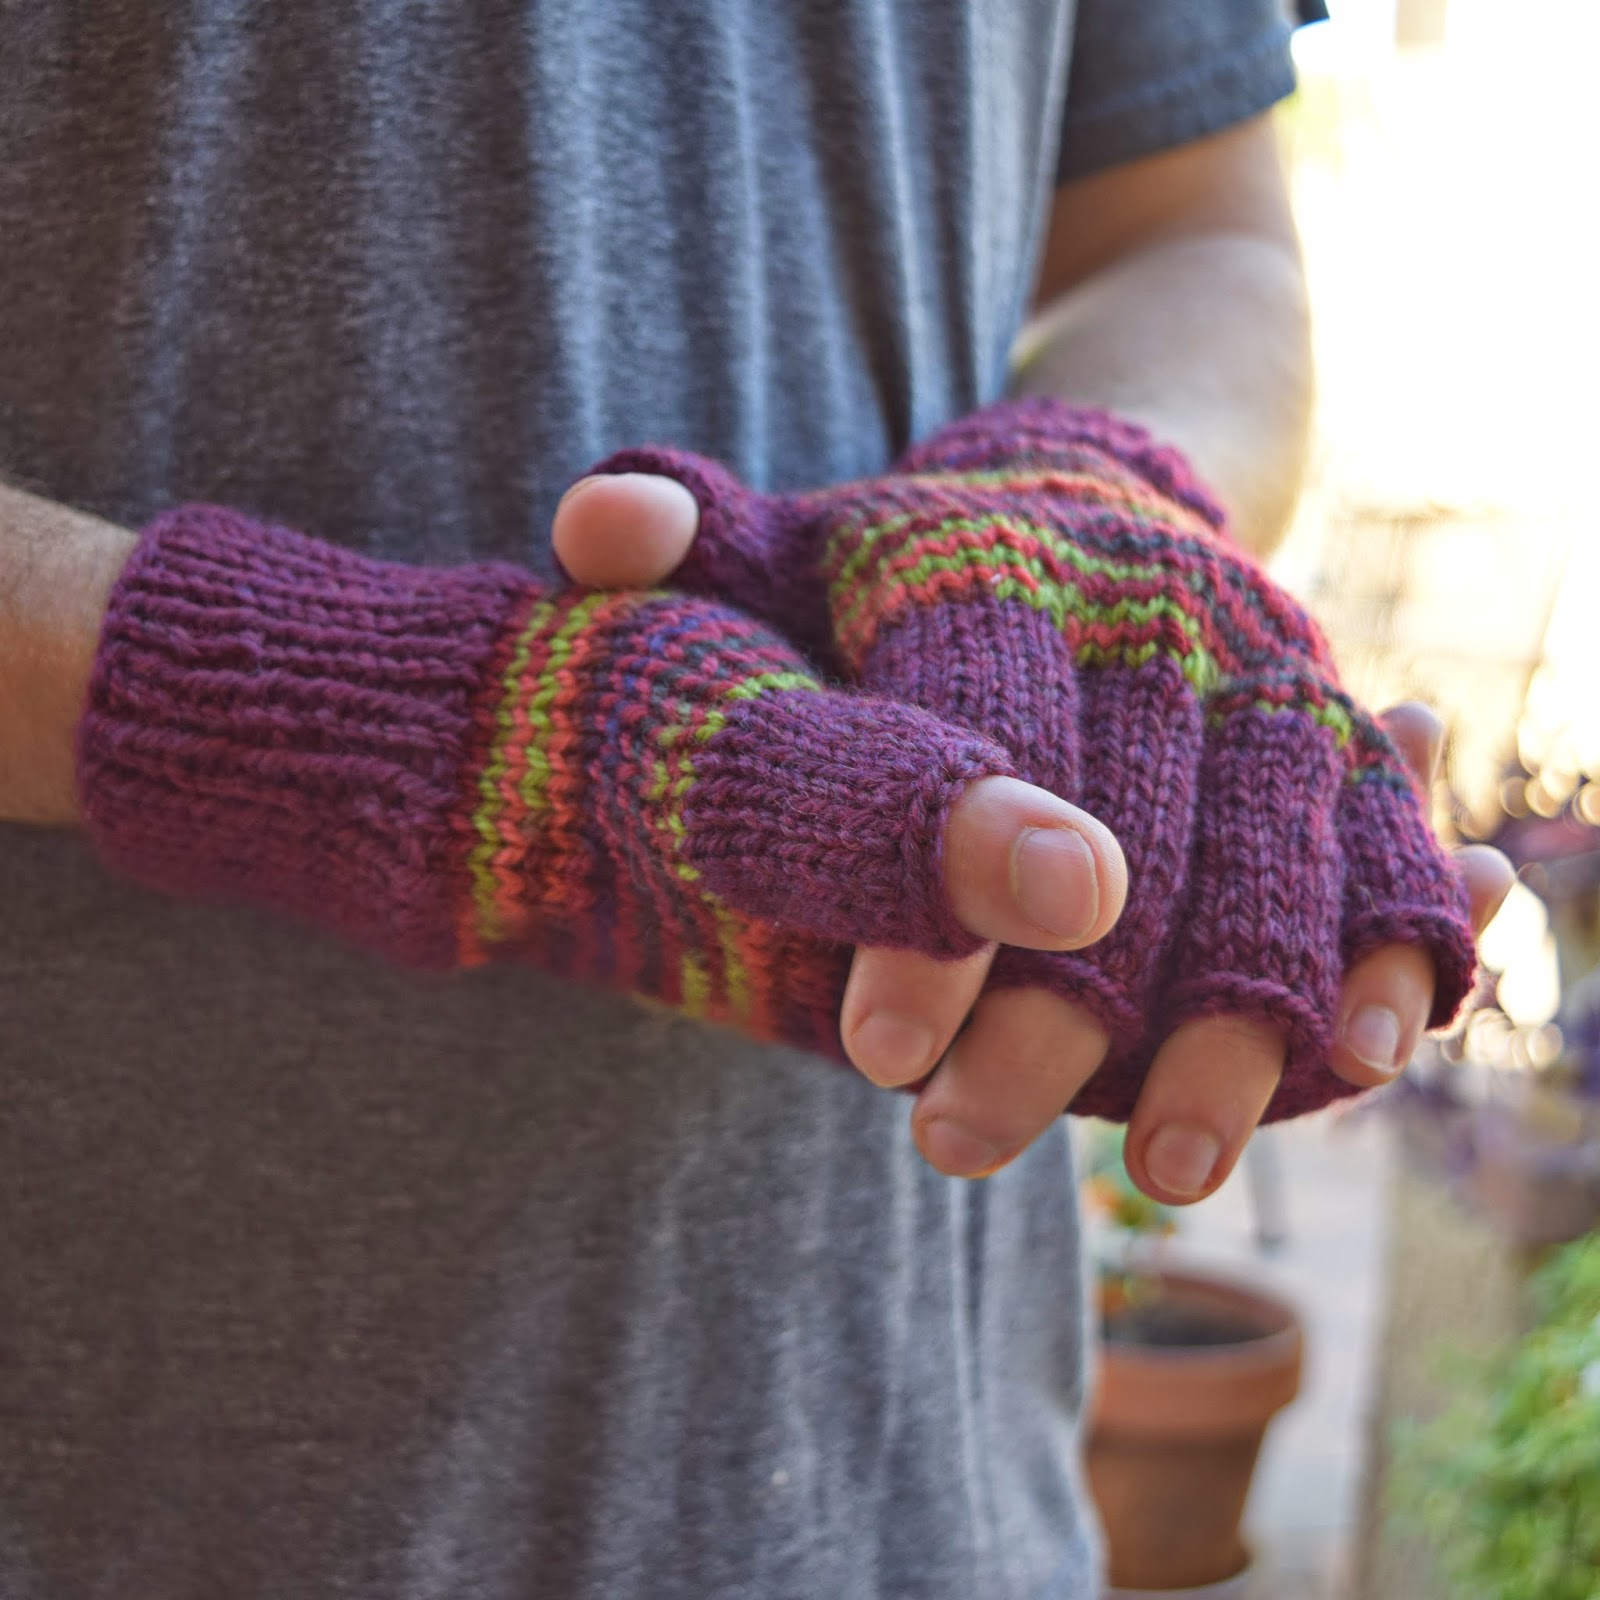 https://www.etsy.com/listing/208988986/mens-fingerless-gloves-fall-colors?ref=shop_home_active_9